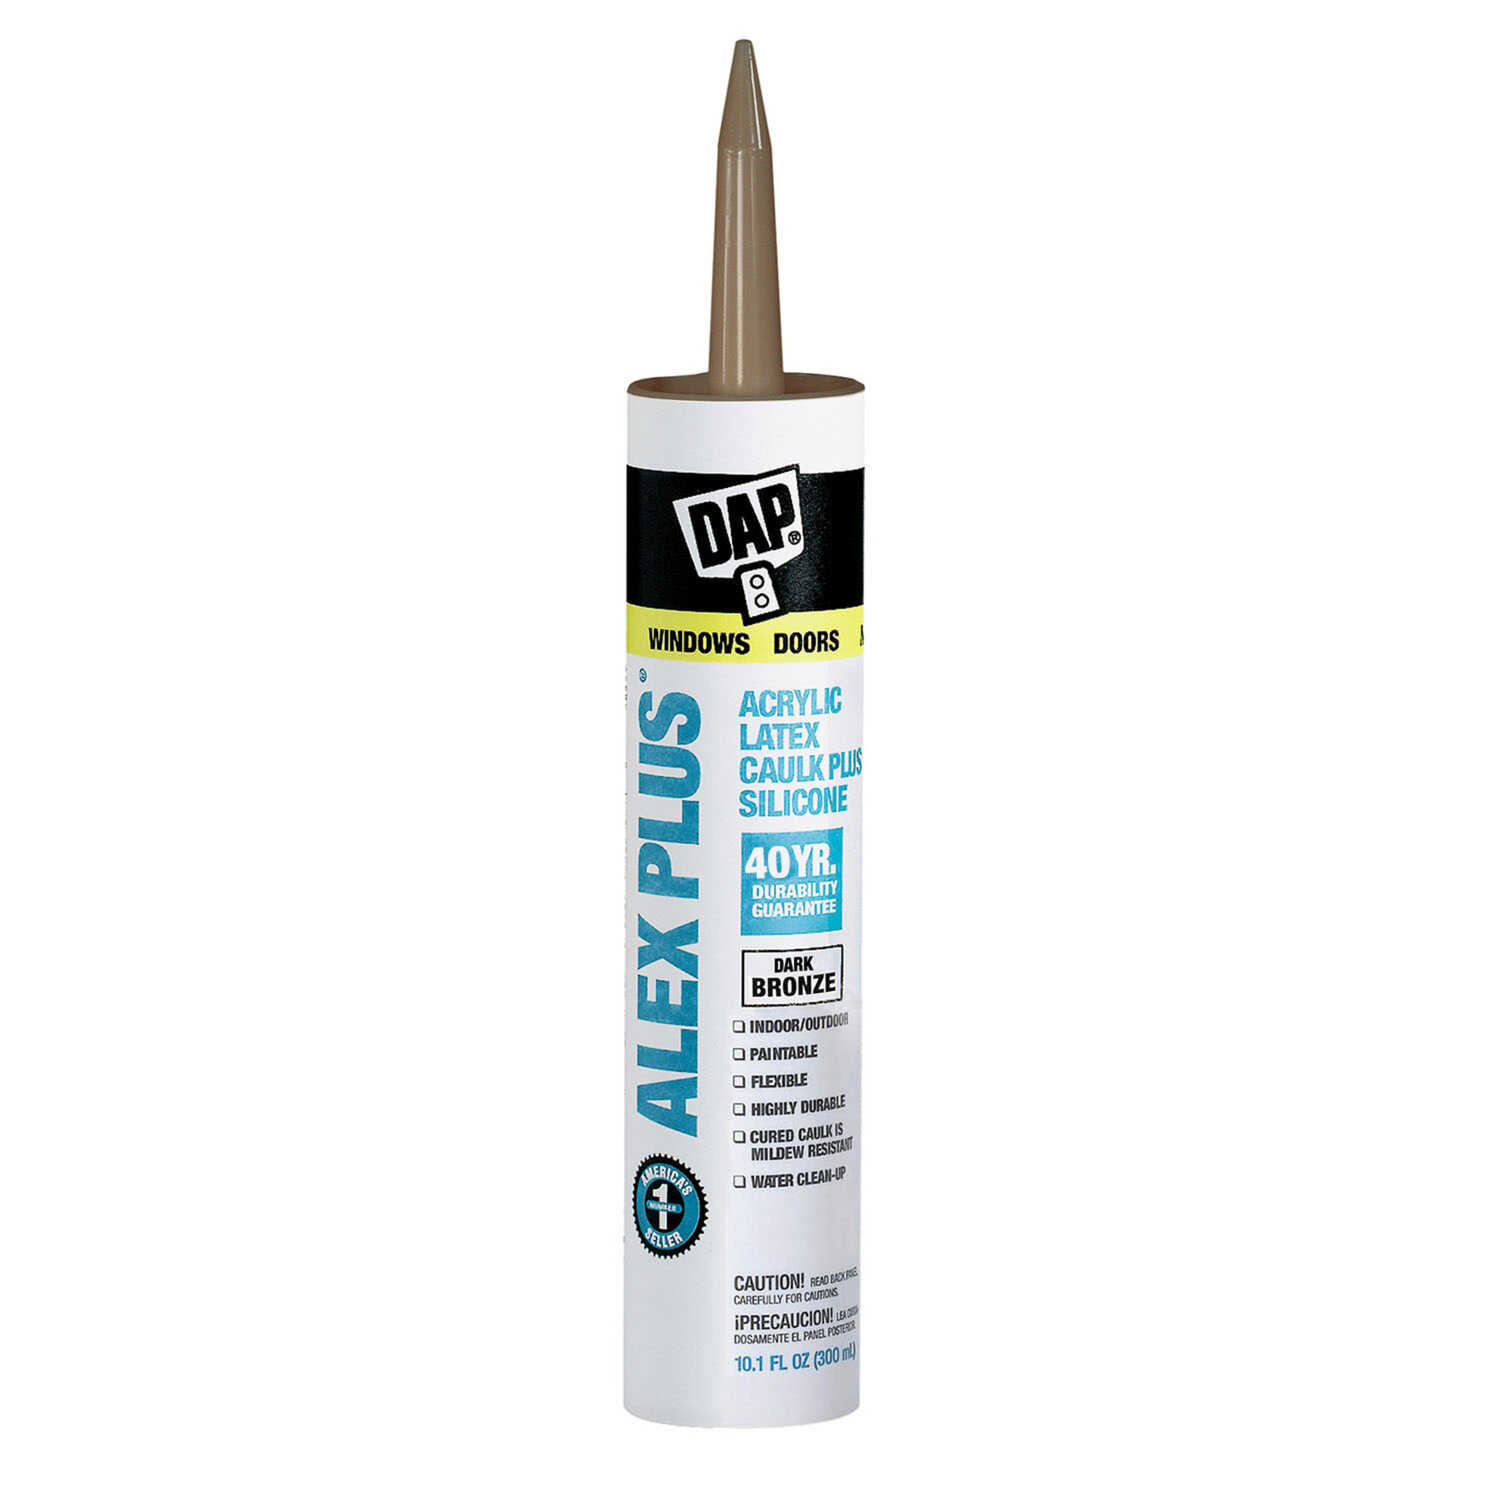 Dap  Alex Plus  Dark Bronze  Acrylic Latex  All Purpose  Caulk  10.1 oz.